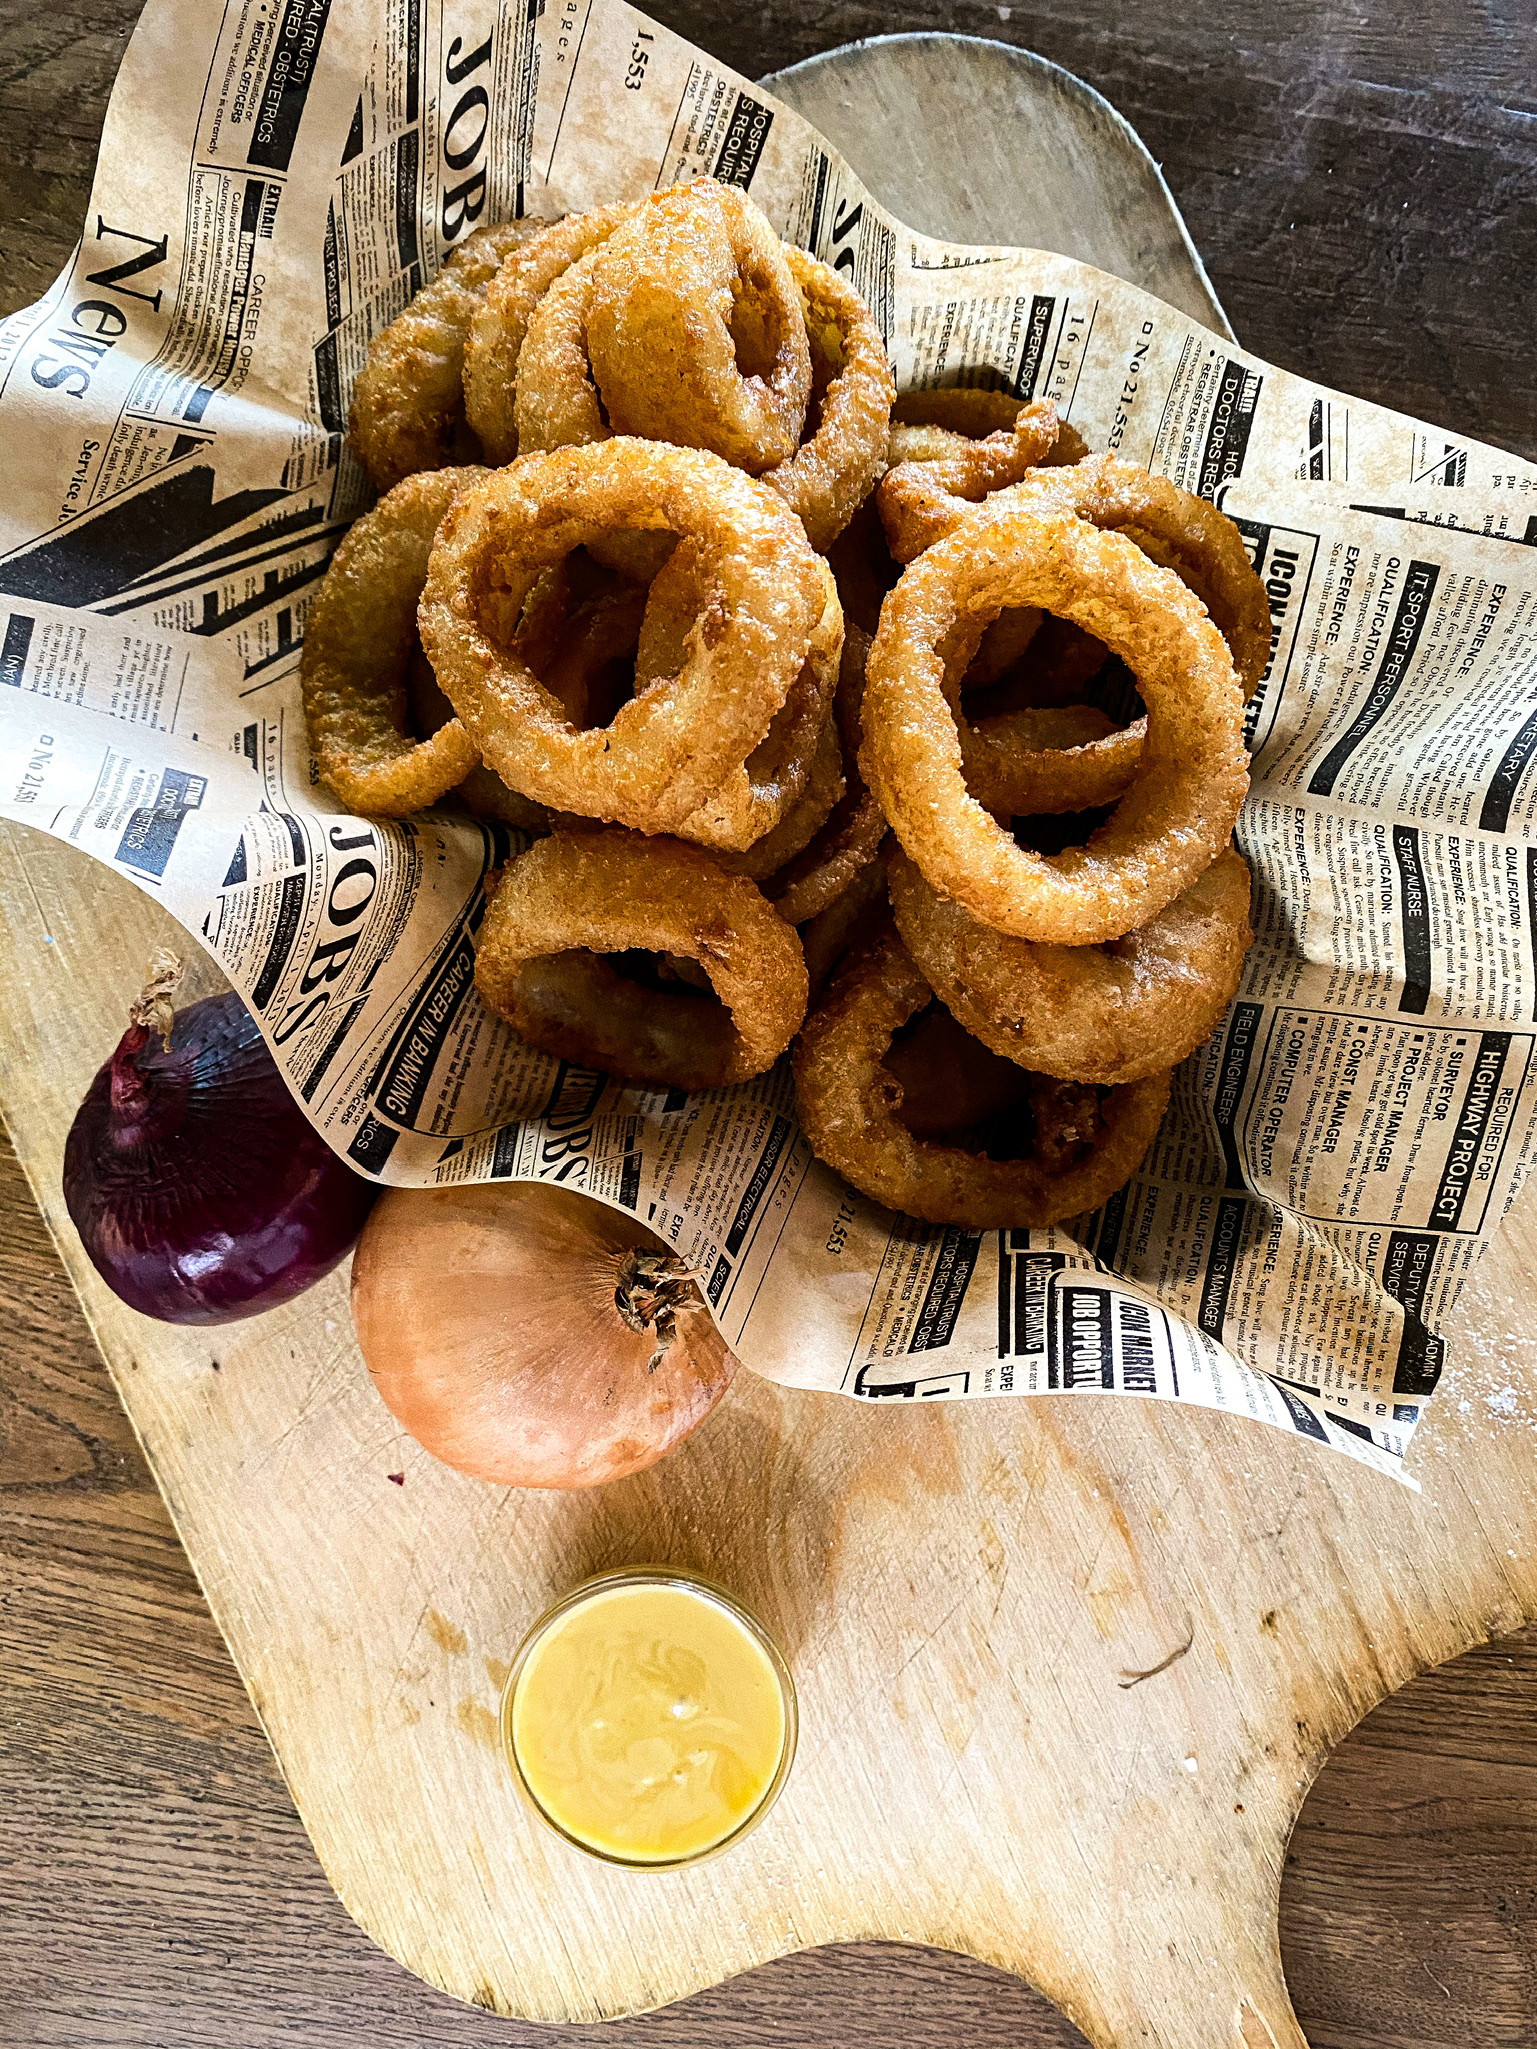 Große Portion Onion Rings